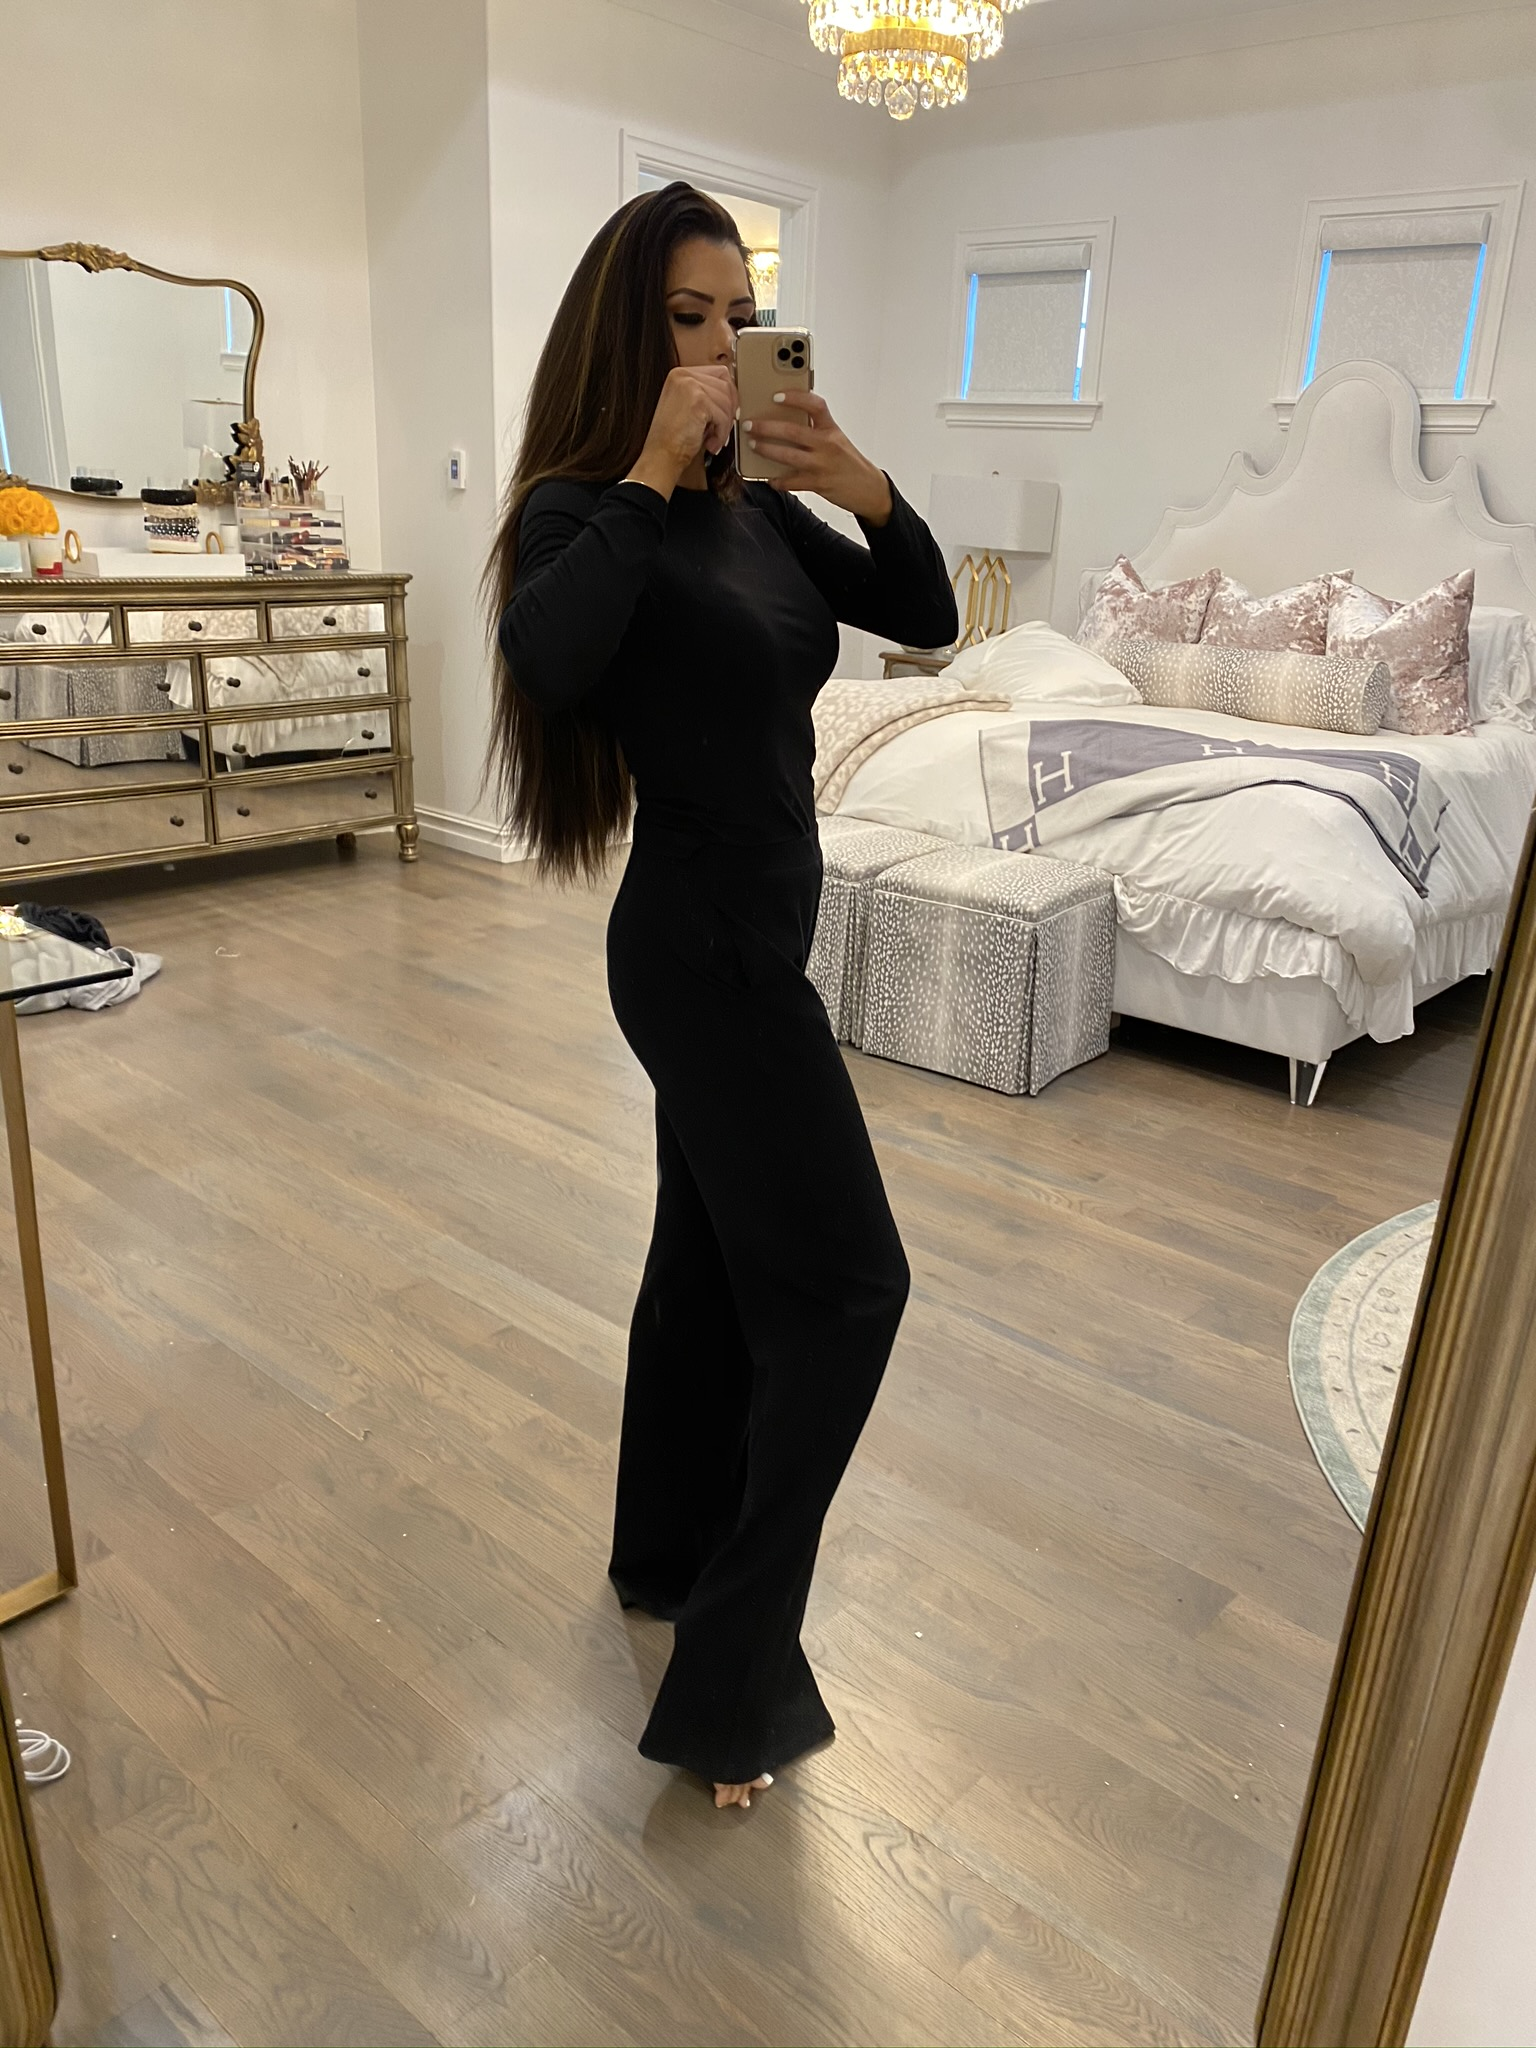 Instagram Recap by popular US fashion blog, The Sweetest Thing: image of a woman wearing a Verishop LETT Montreal Rib Top and a Verishop LETT Heathrow Wide Leg Pant.